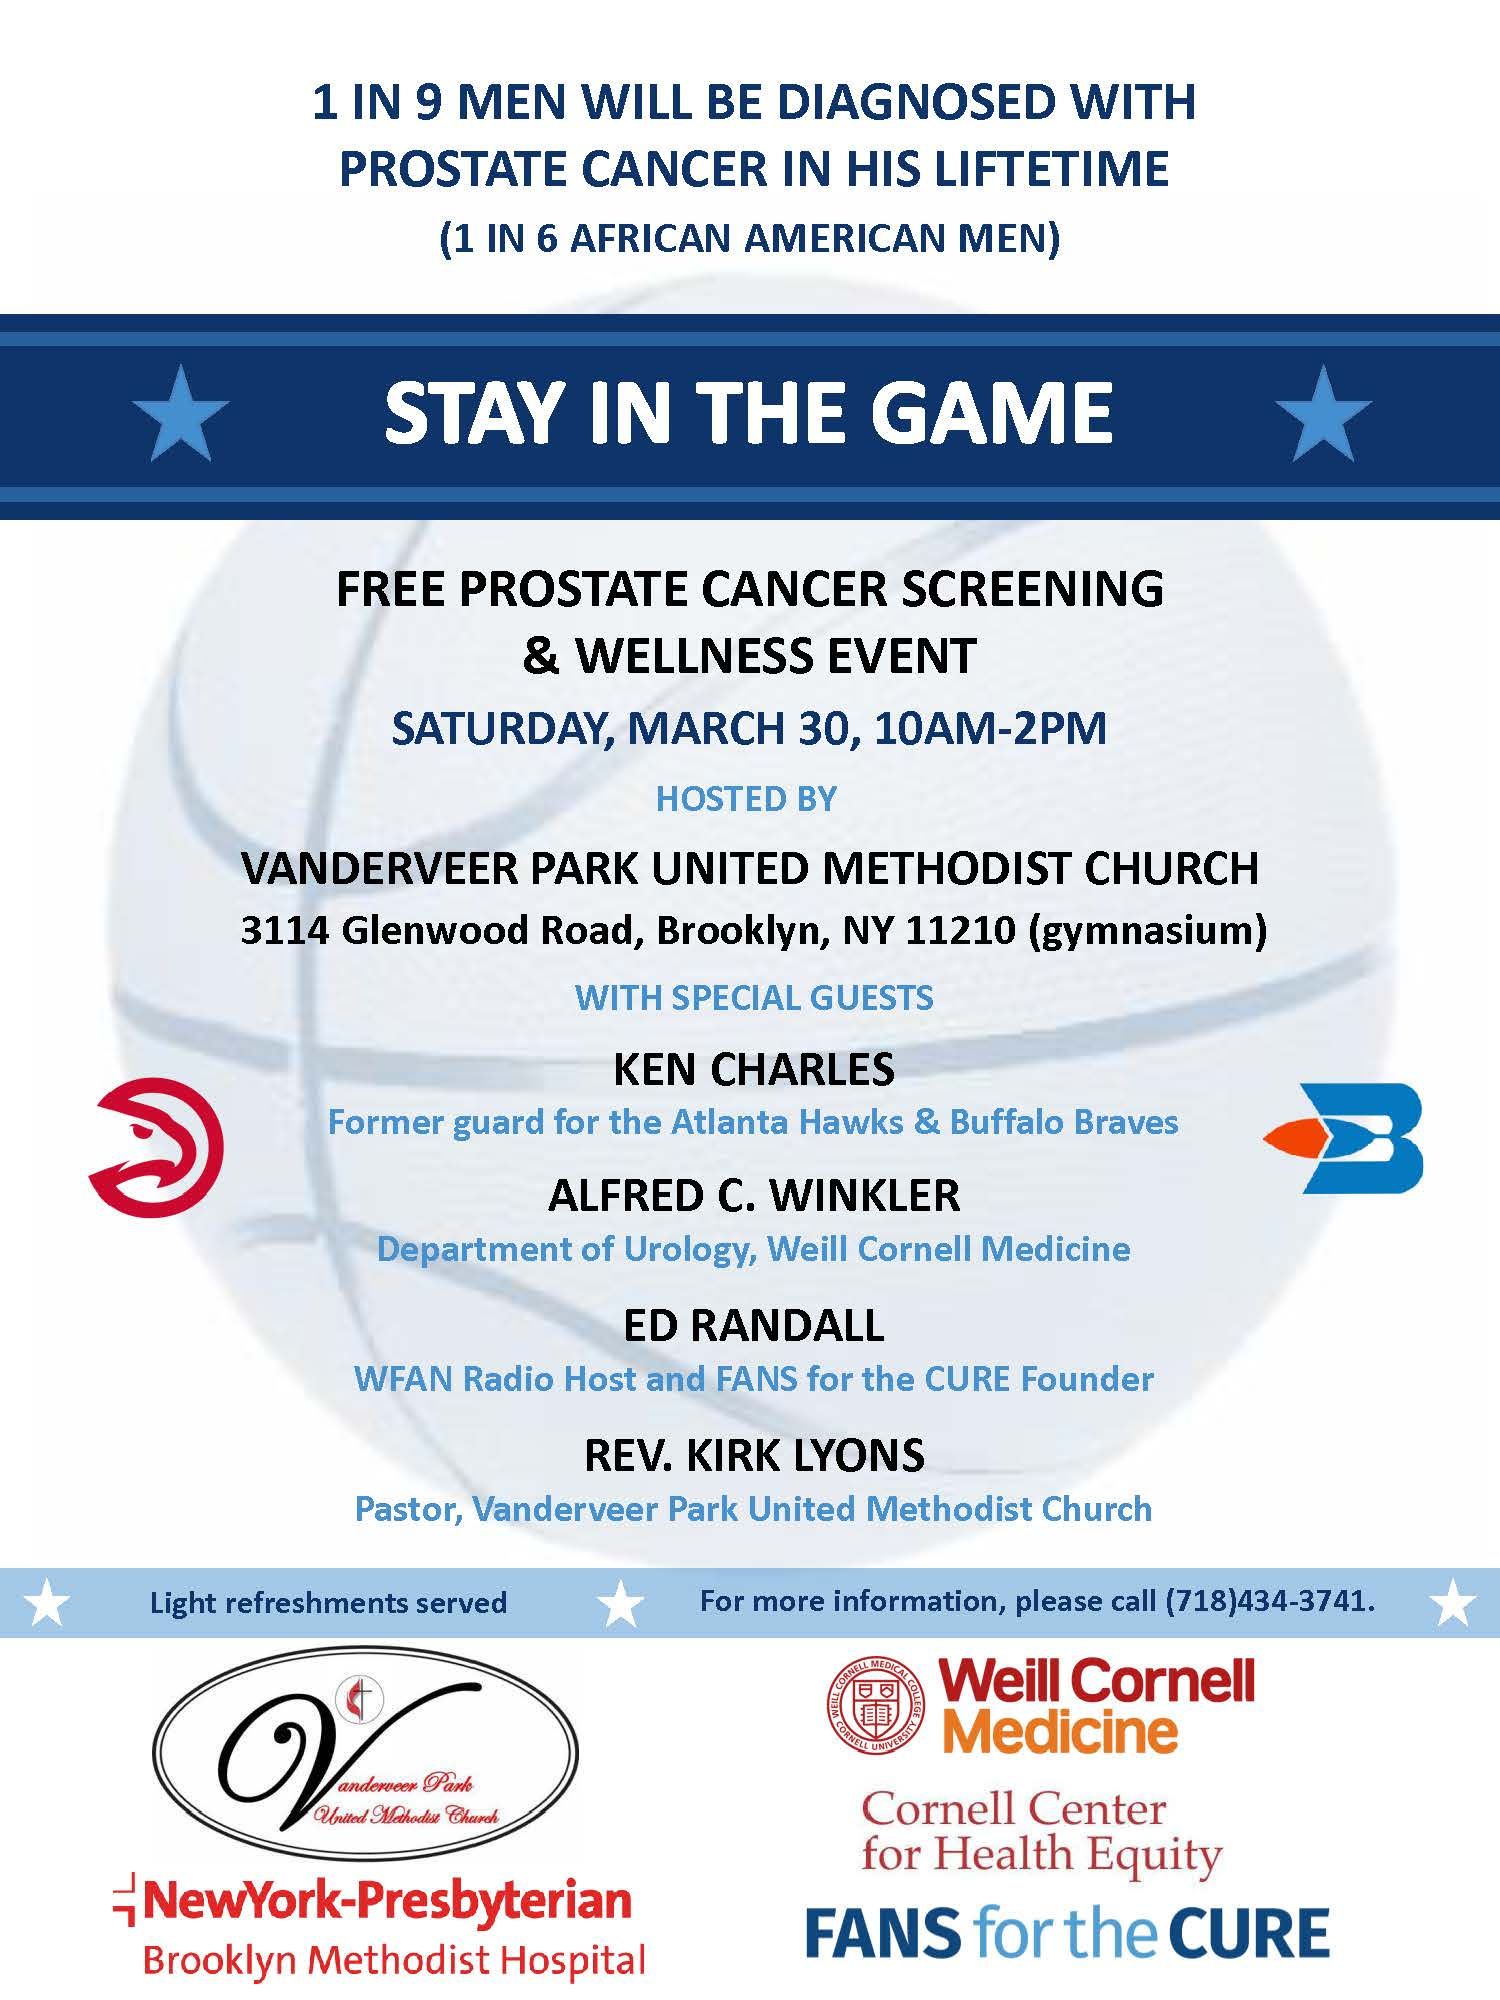 Stay in the Game- FREE Prostate Cancer Screening & Wellness